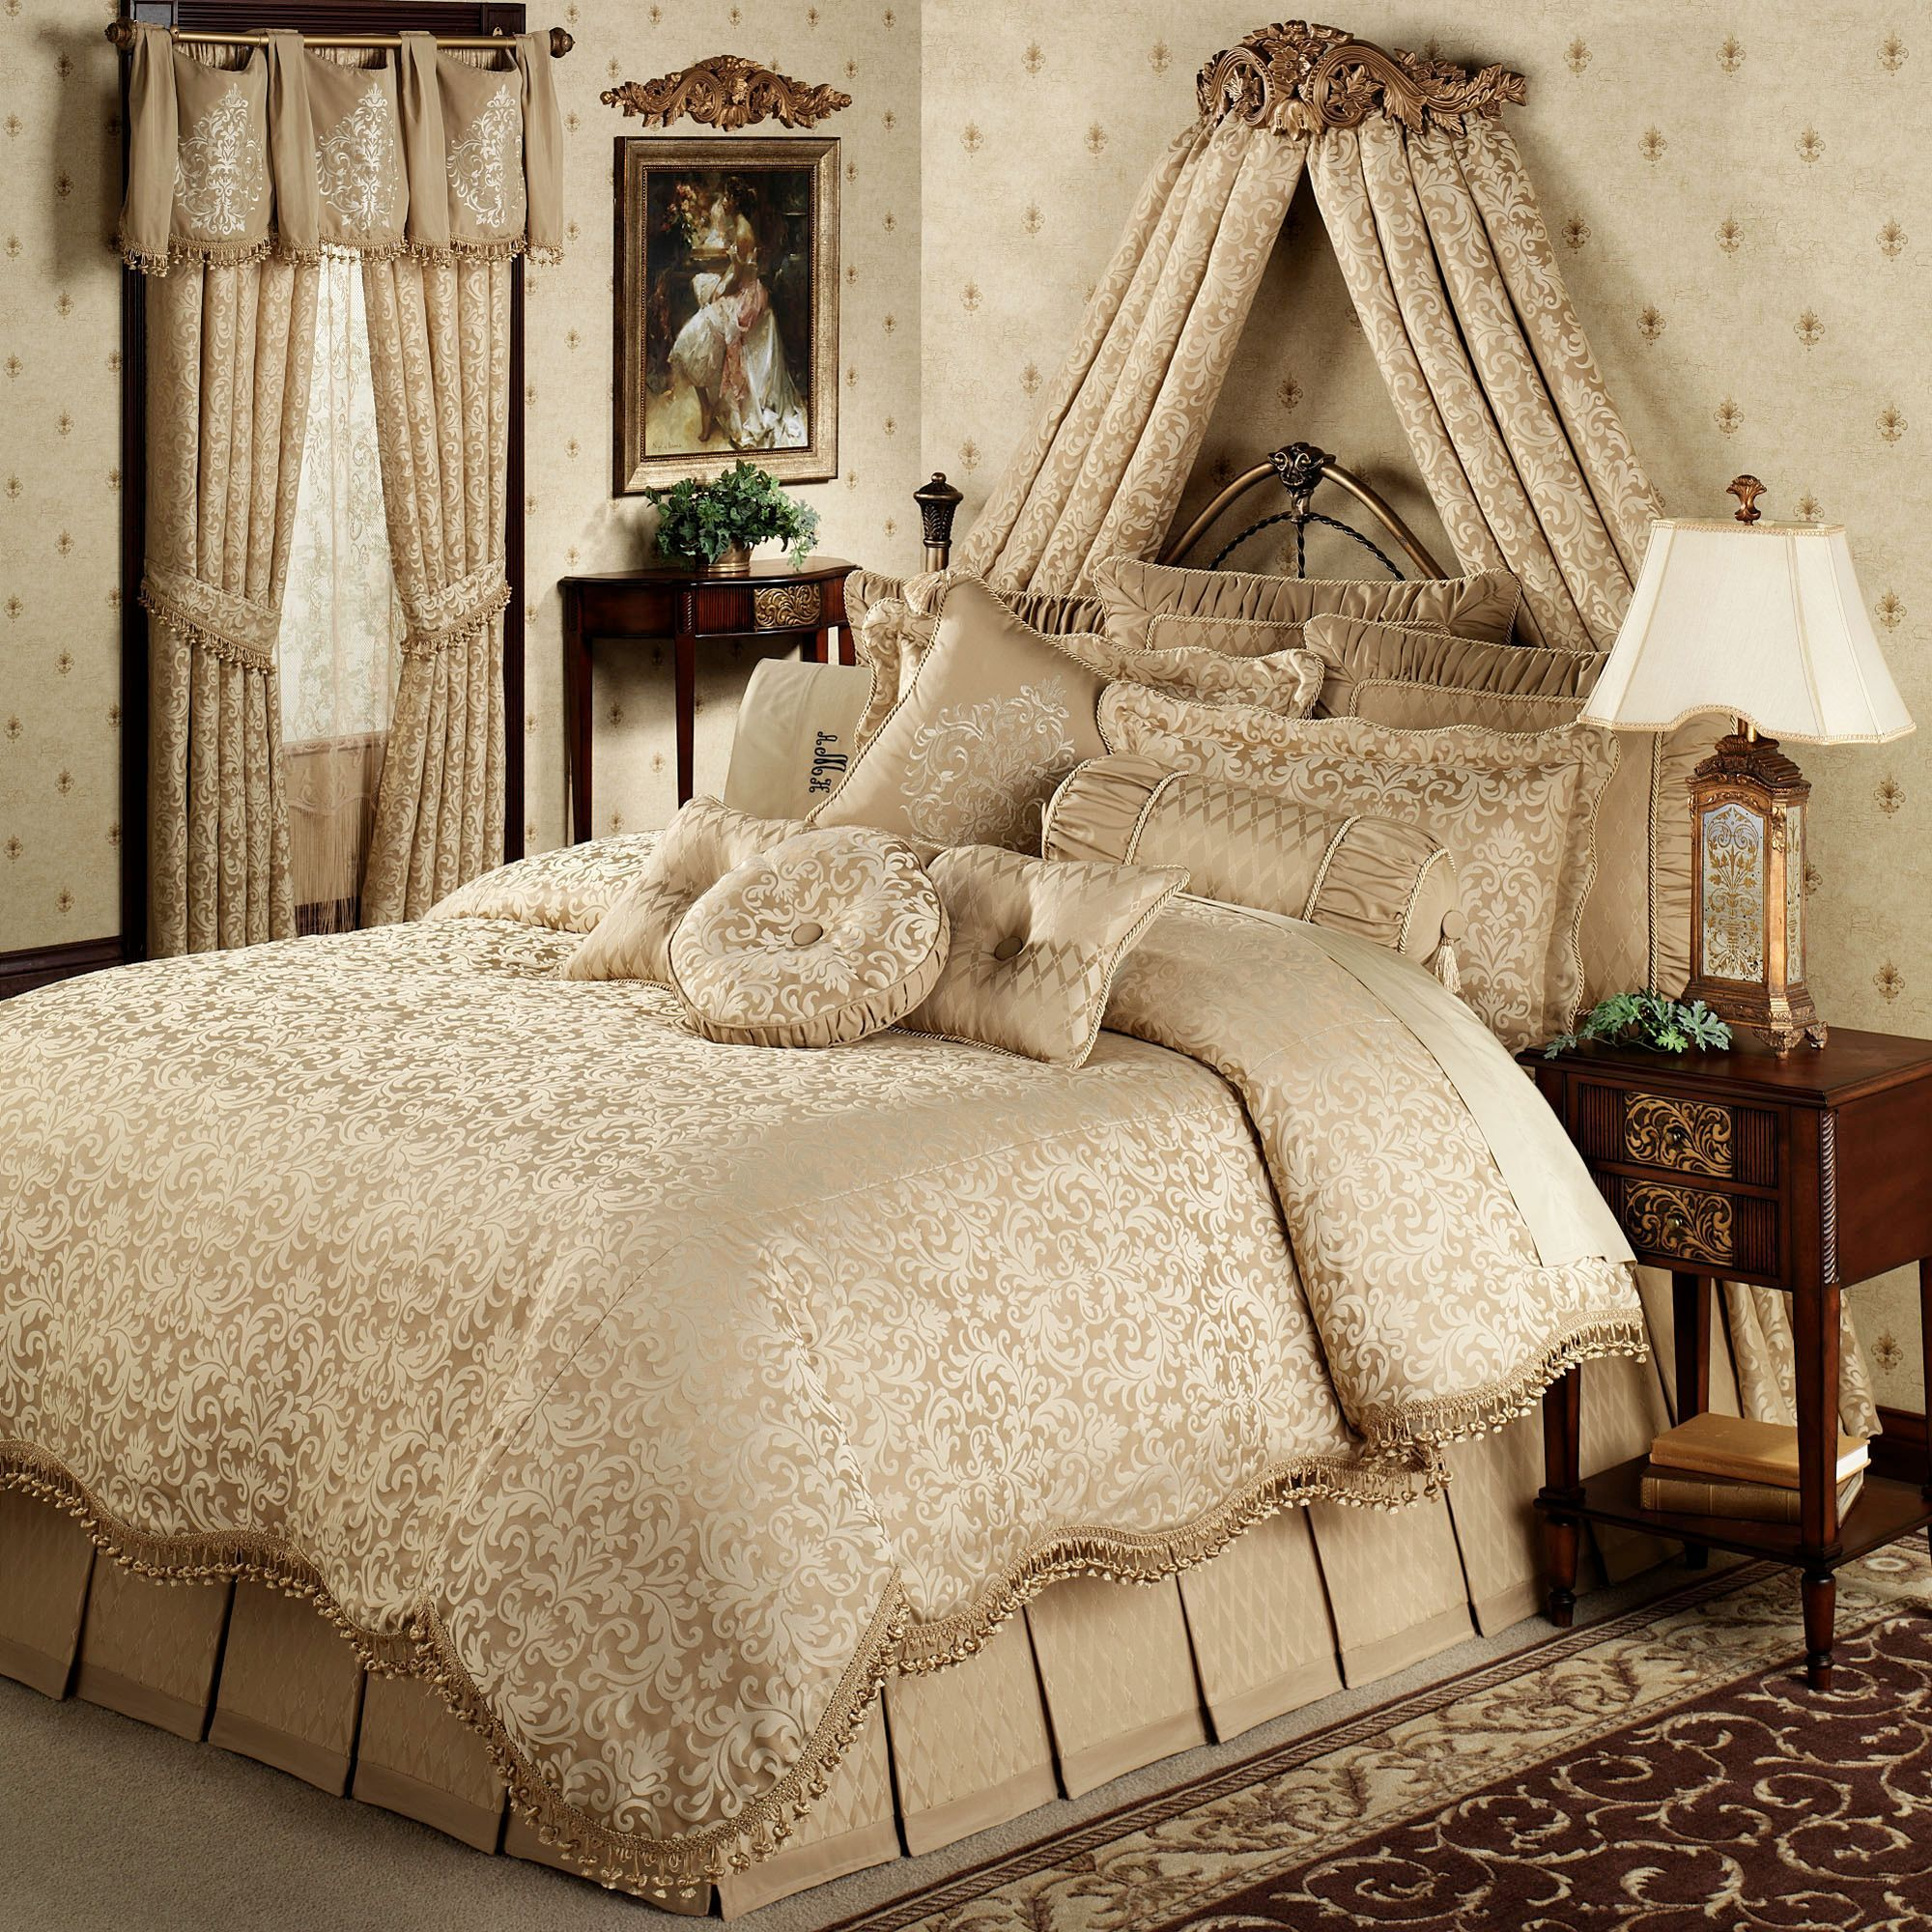 Newcastle Damask Comforter Bedding | Newcastle, Comforter and Damasks